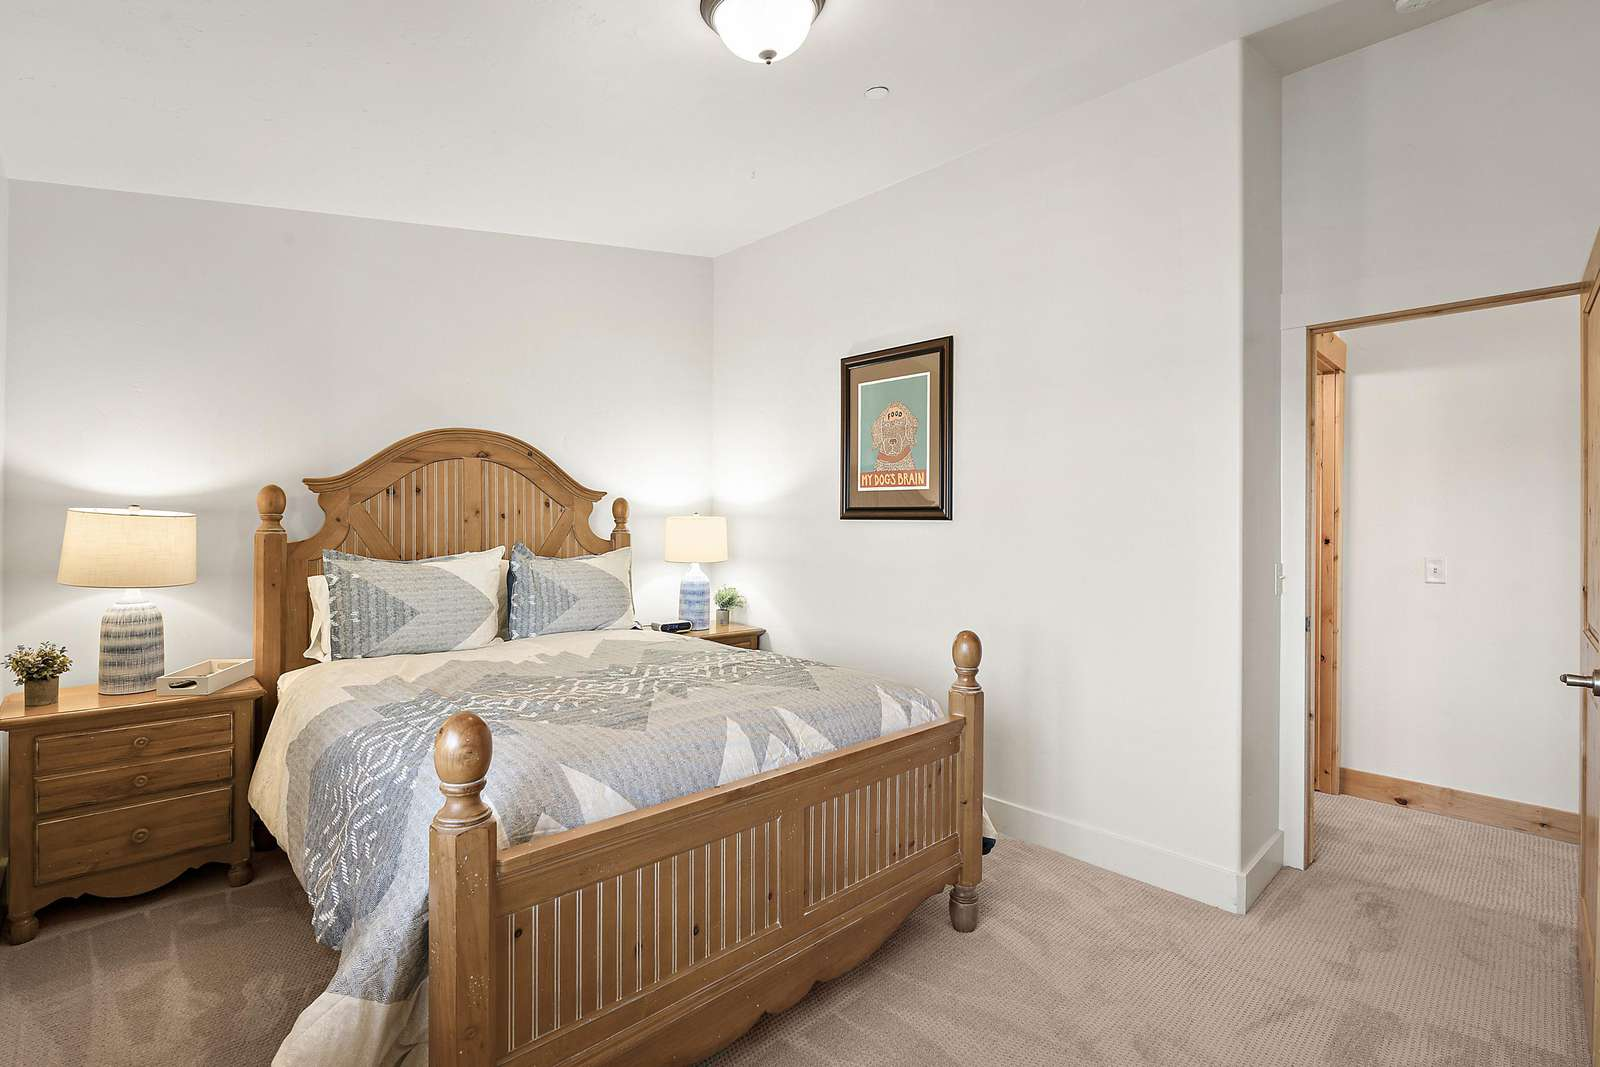 Private guest bedroom